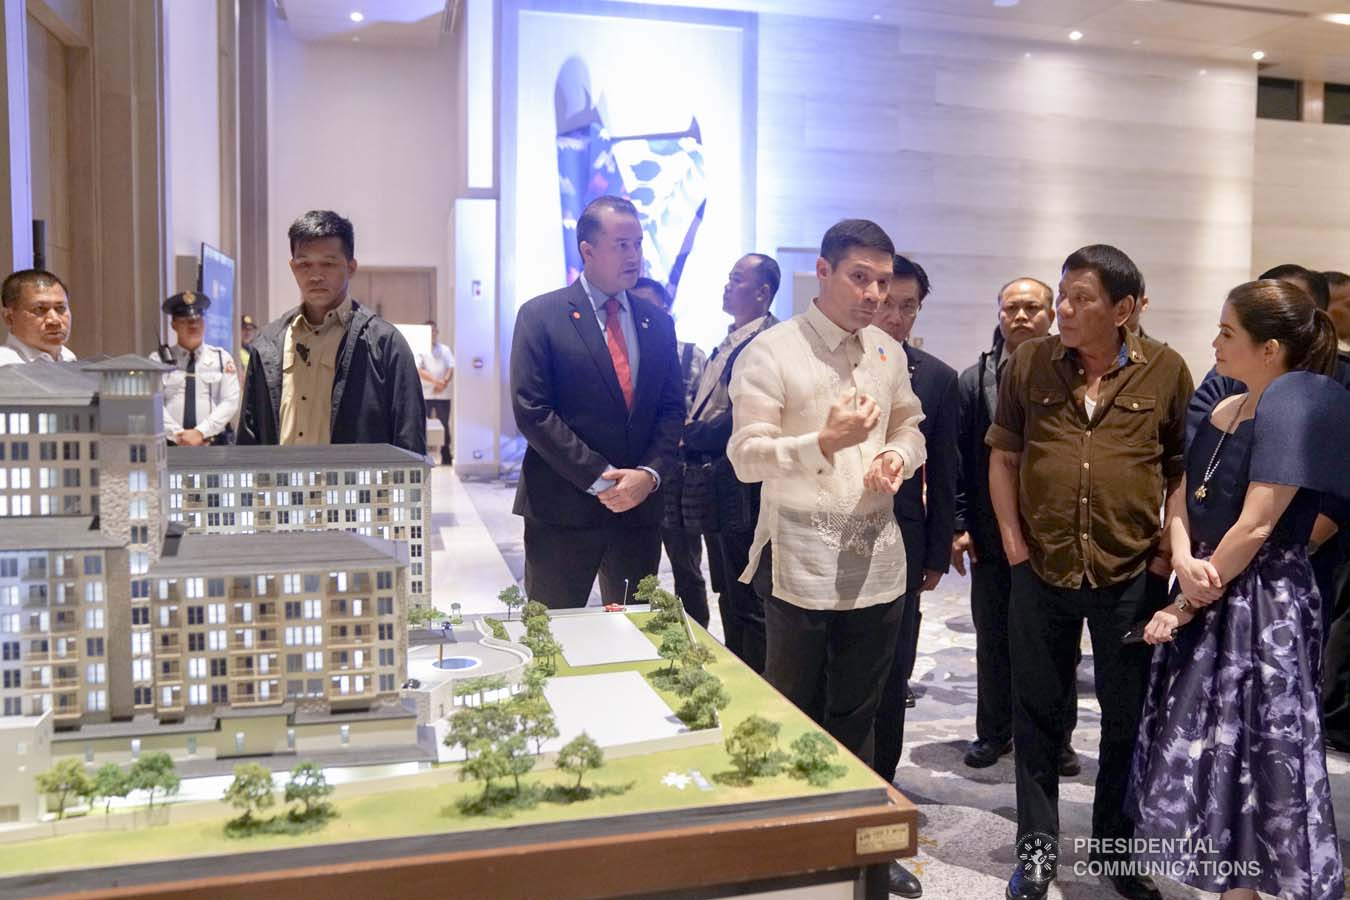 President Rodrigo Roa Duterte is given a briefing by Torre Lorenzo Development Corporation (TLDC) CEO Tomas Lorenzo and Tourism Secretary Bernadette Romulo-Puyat during the inauguration of the Dusit D2 Davao Hotel in Davao City on September 6, 2019. ARMAN BAYLON/PRESIDENTIAL PHOTO